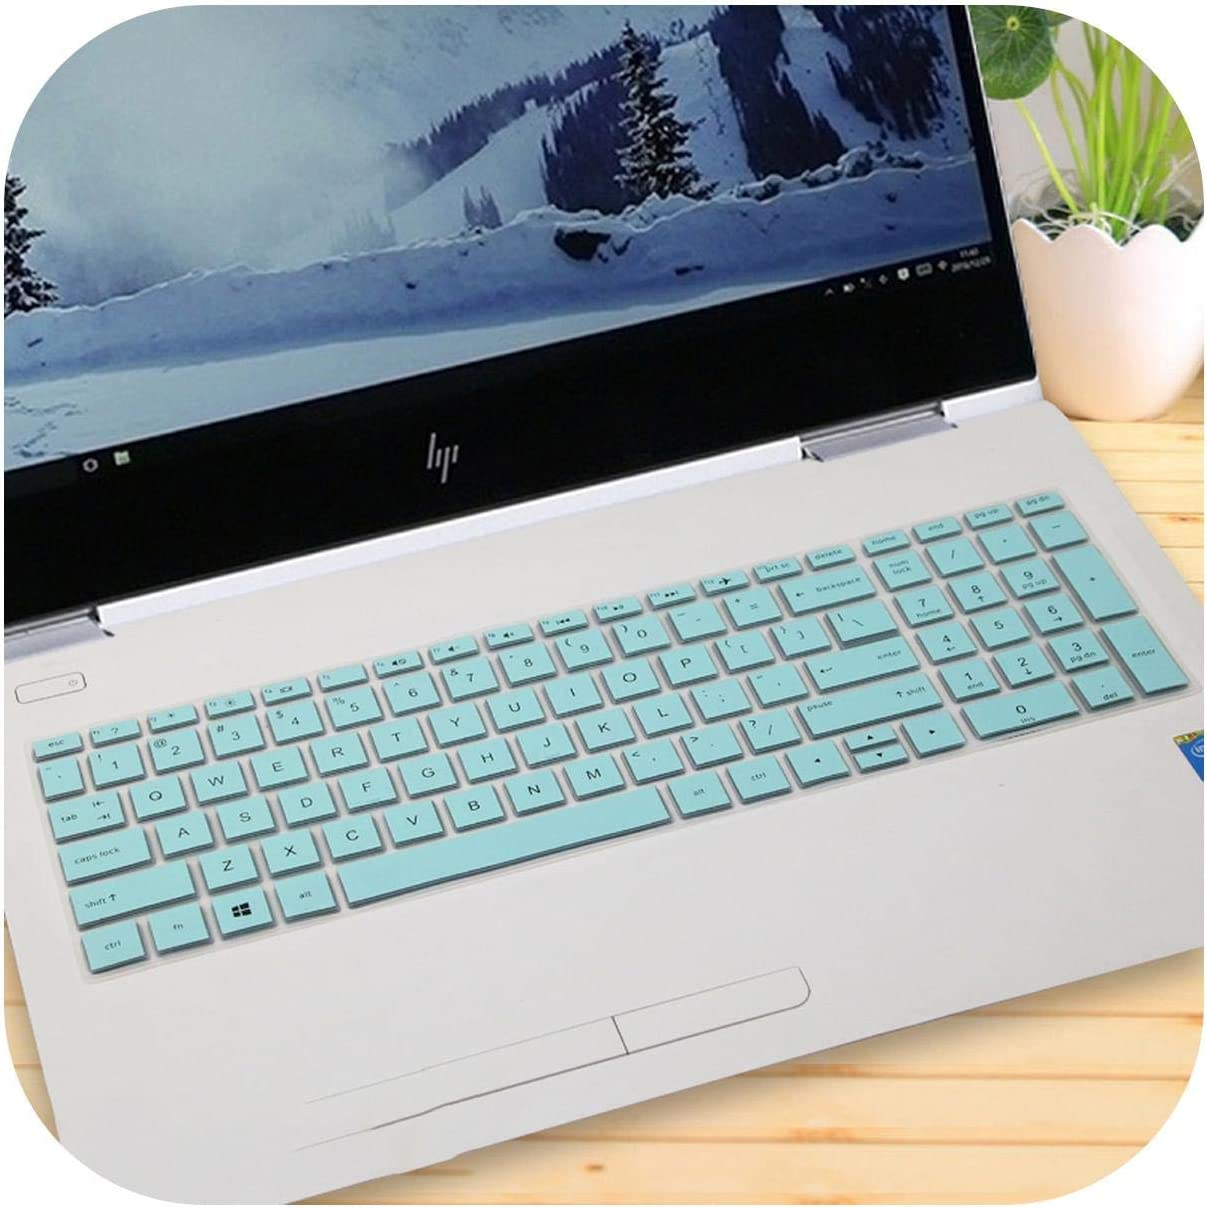 15.6 Inch Laptop Keyboard Cover Protector for Hp Pavilion 250 G6 255 G6 256 G6 258 G6 T Notebook Pc-Fadegreen